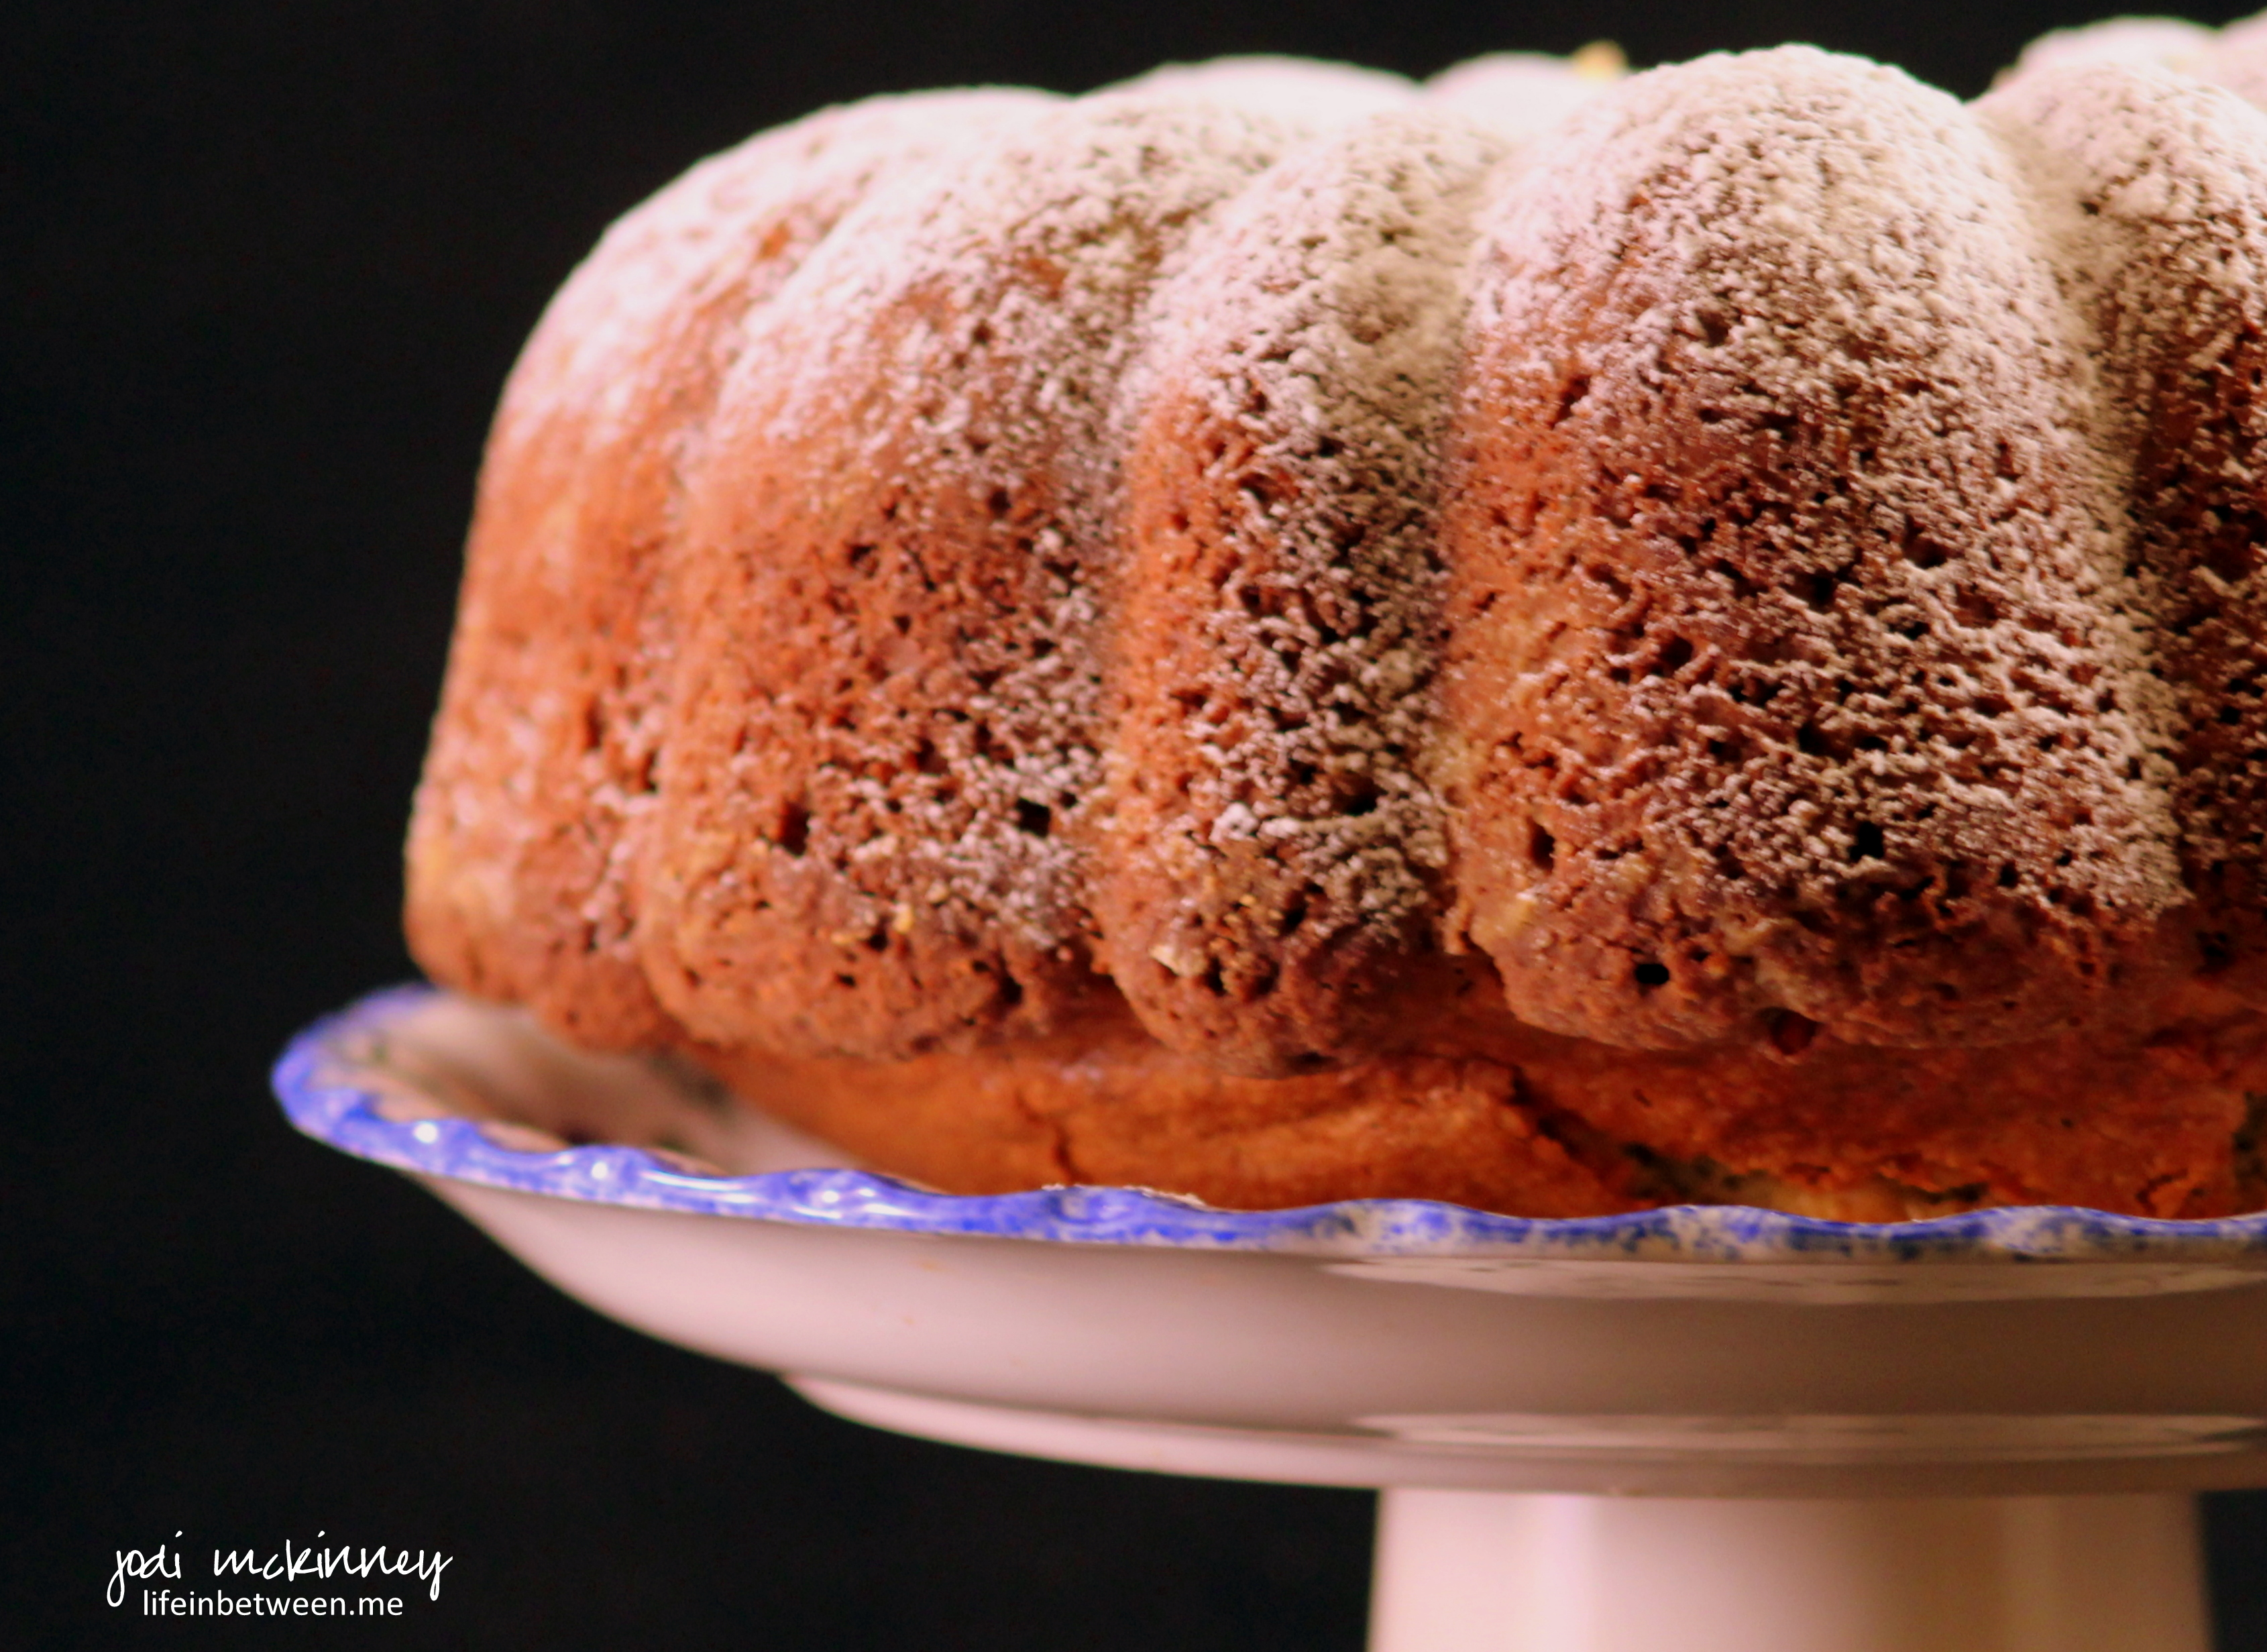 for poppy seed cake lately, and when I passed a package of poppy seeds ...